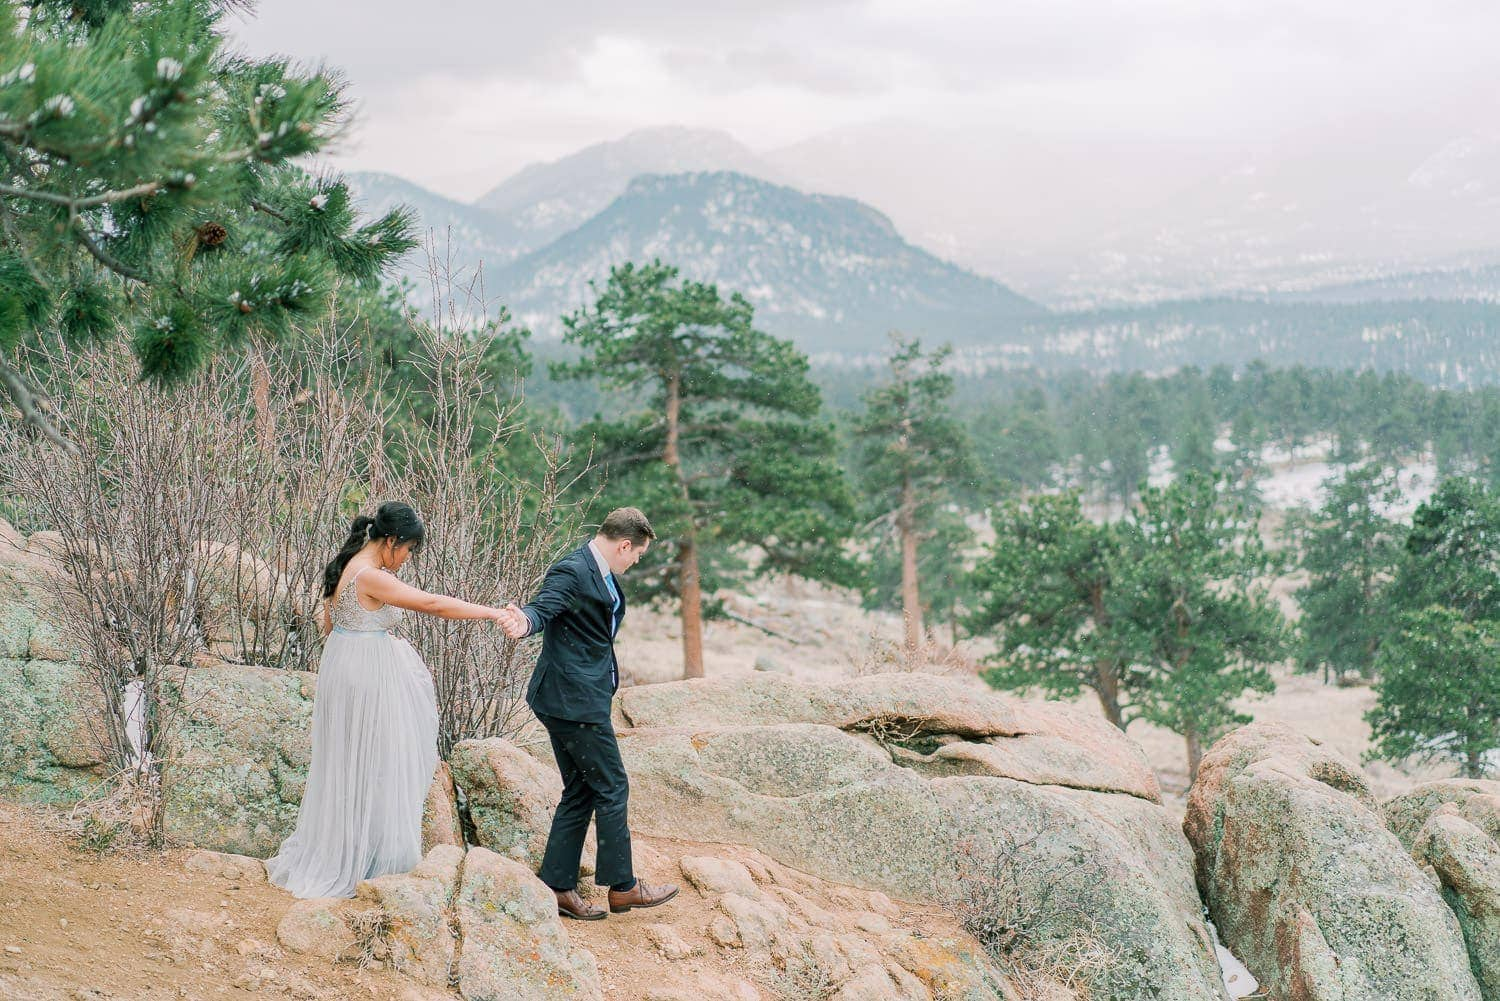 vow renewal at 3M Curve in Rocky Mountain National Park